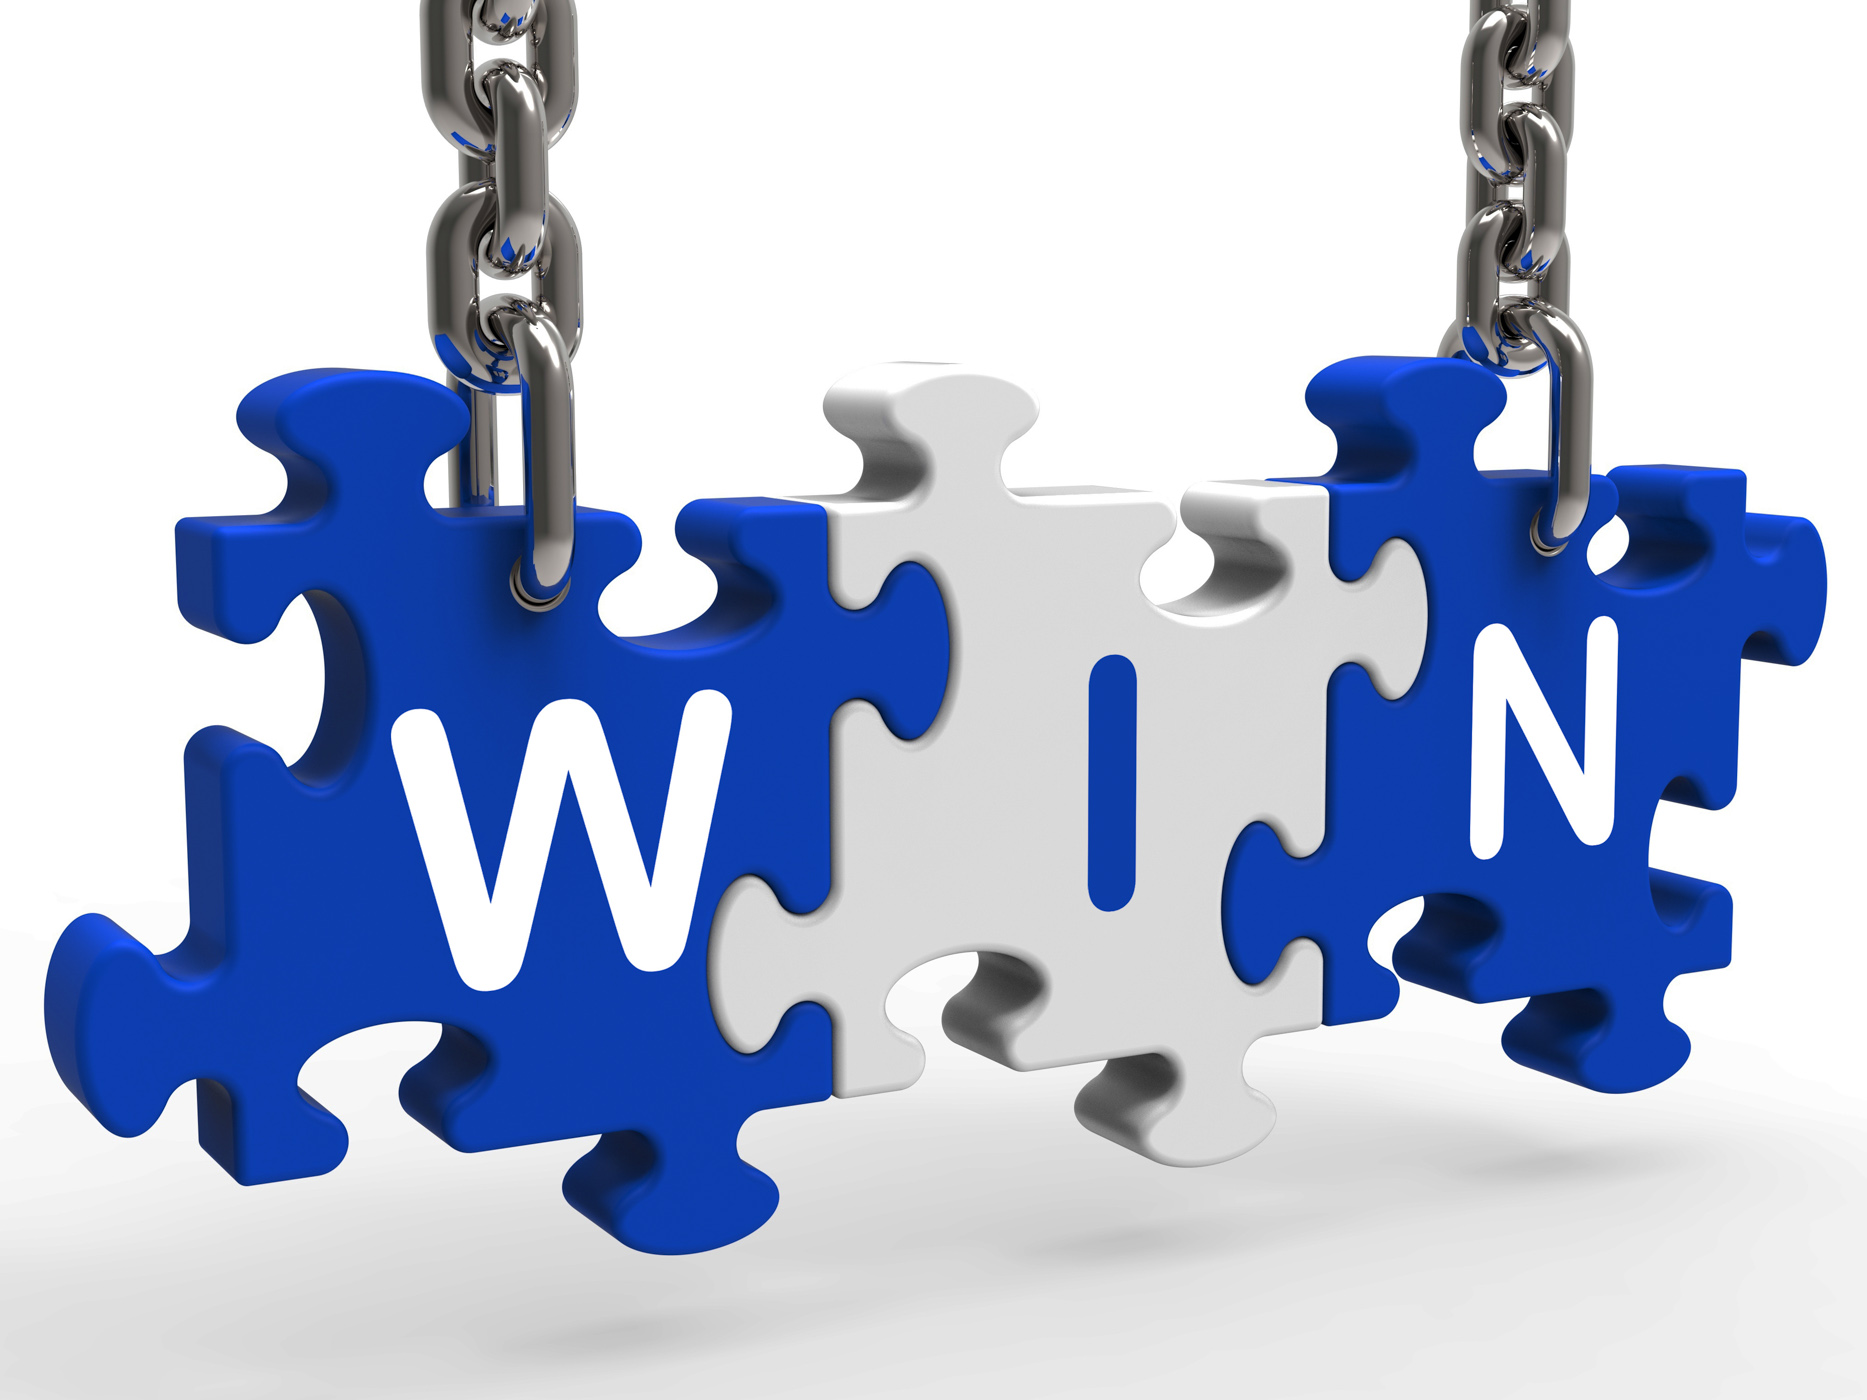 Win sign shows success winning and victories photo